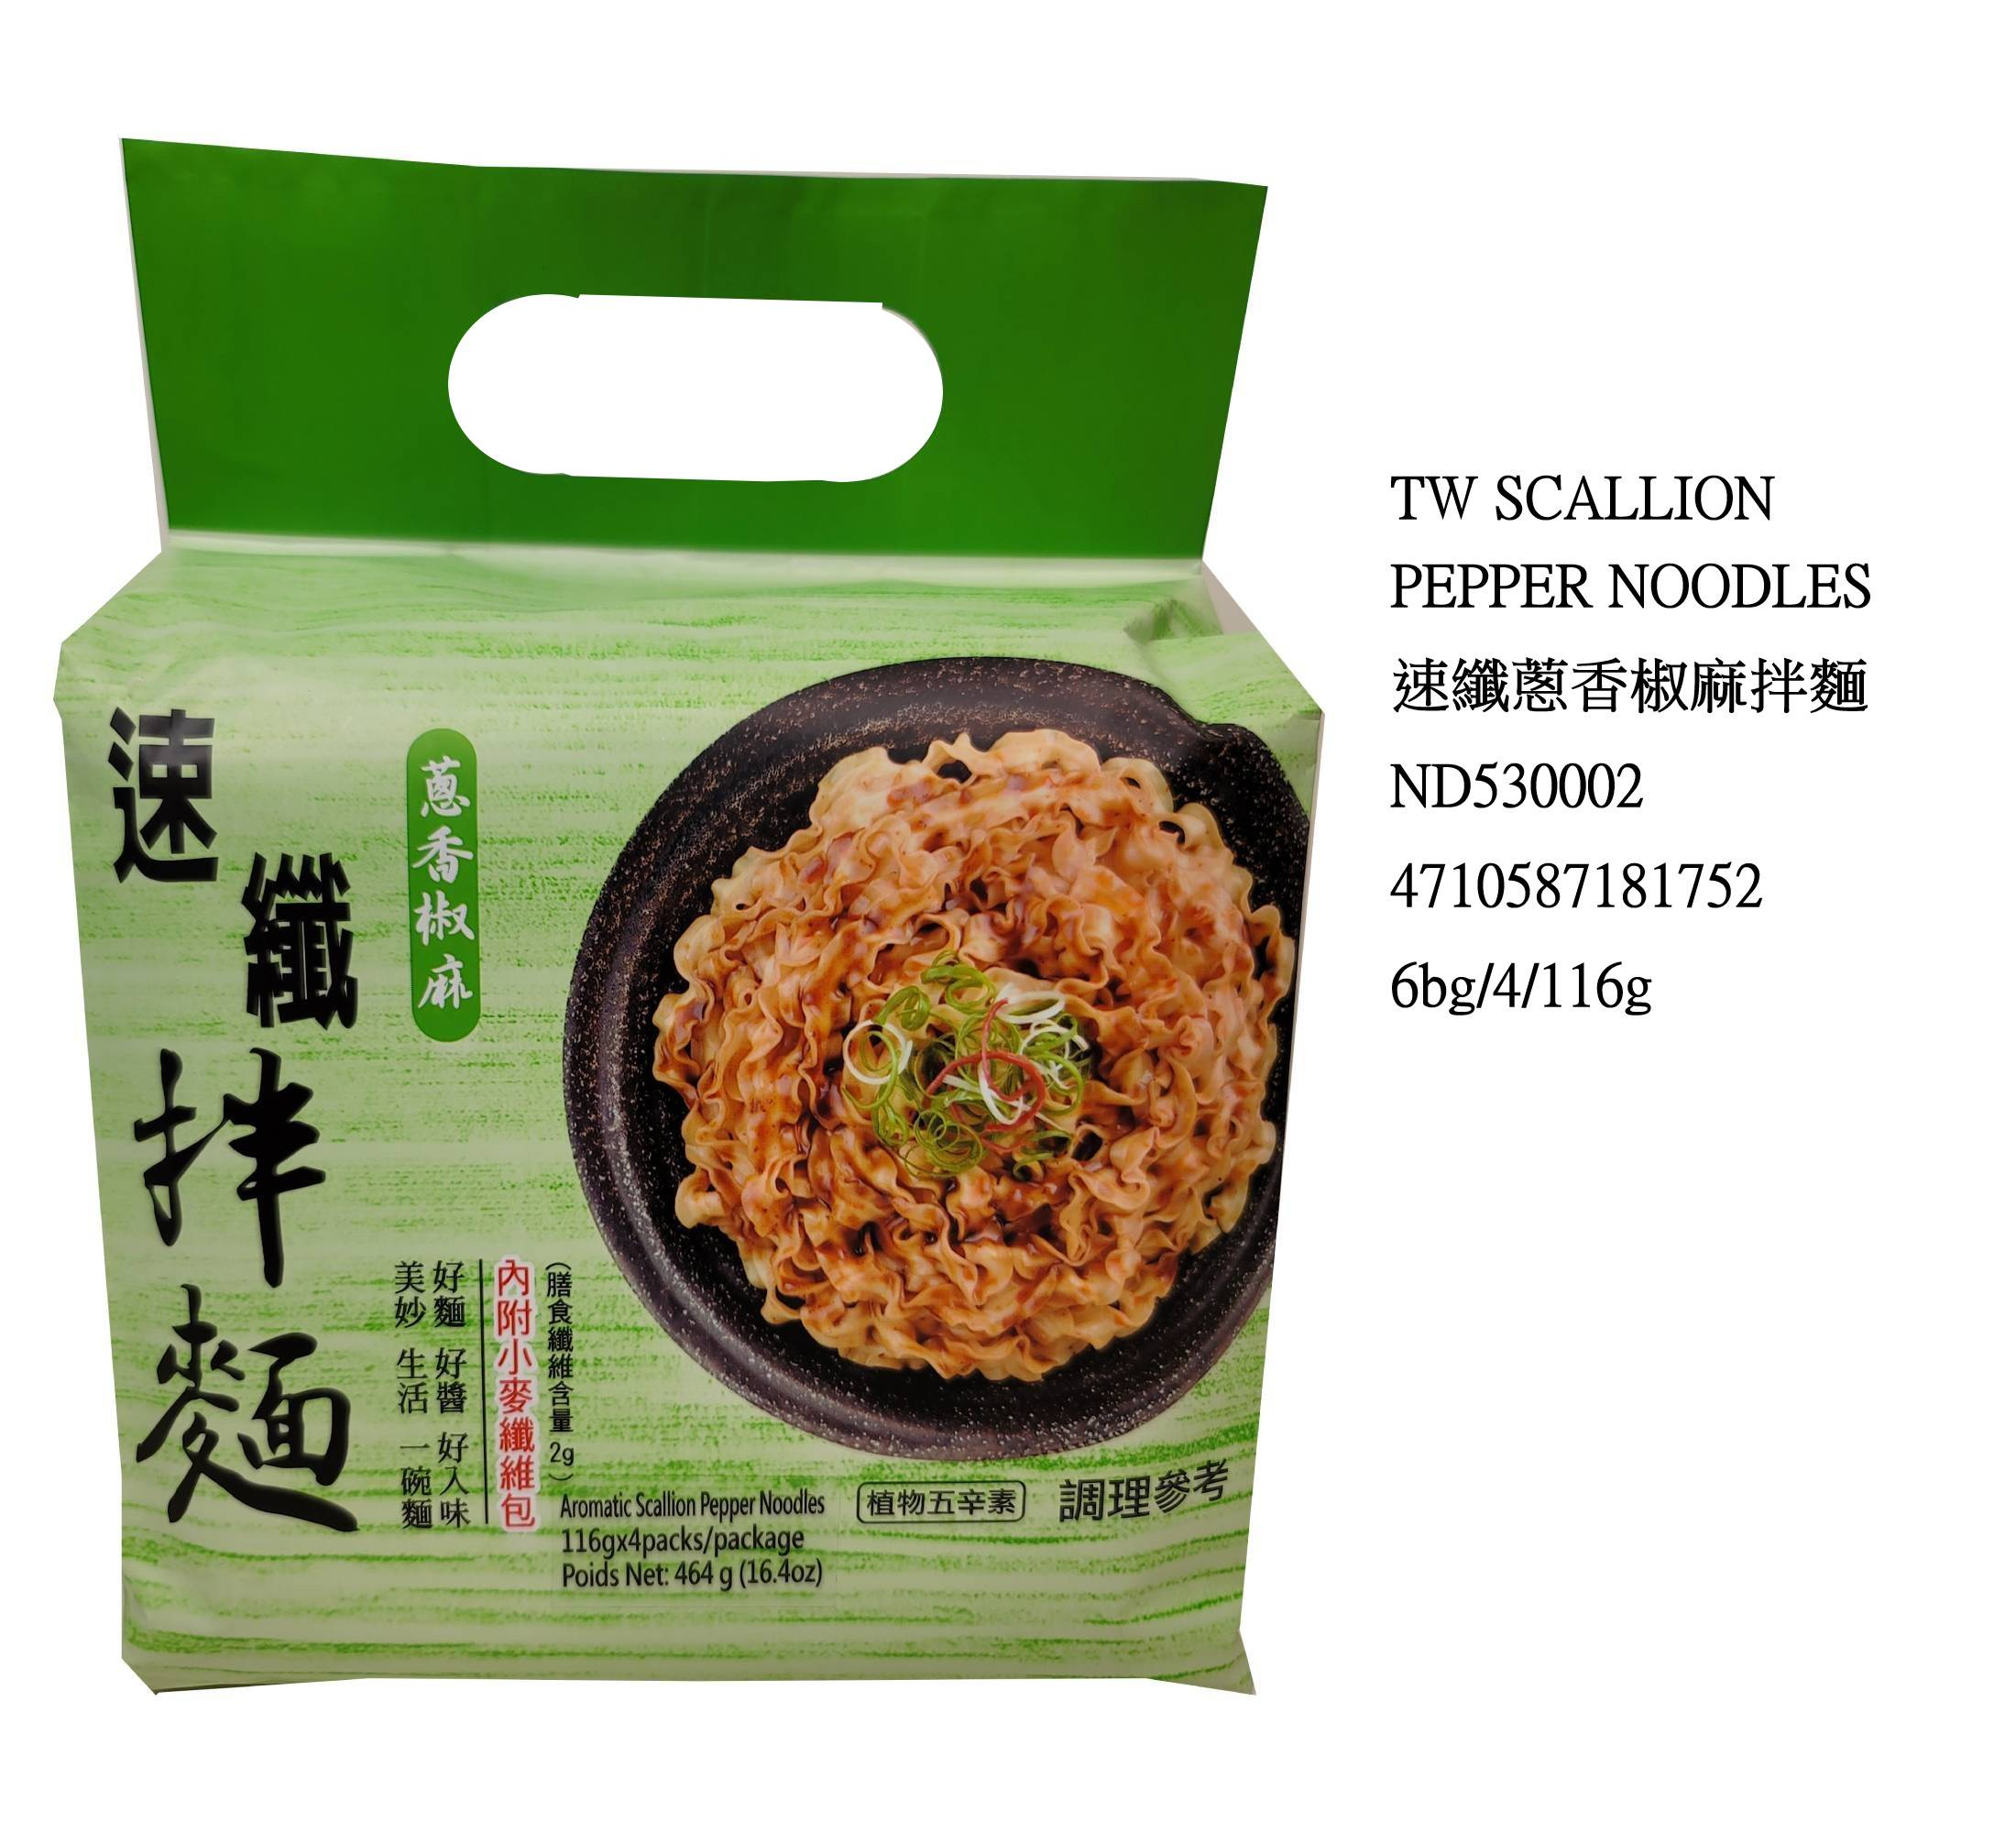 RICO AROMATIC CSALLION PEPPER NOODLES ND530002